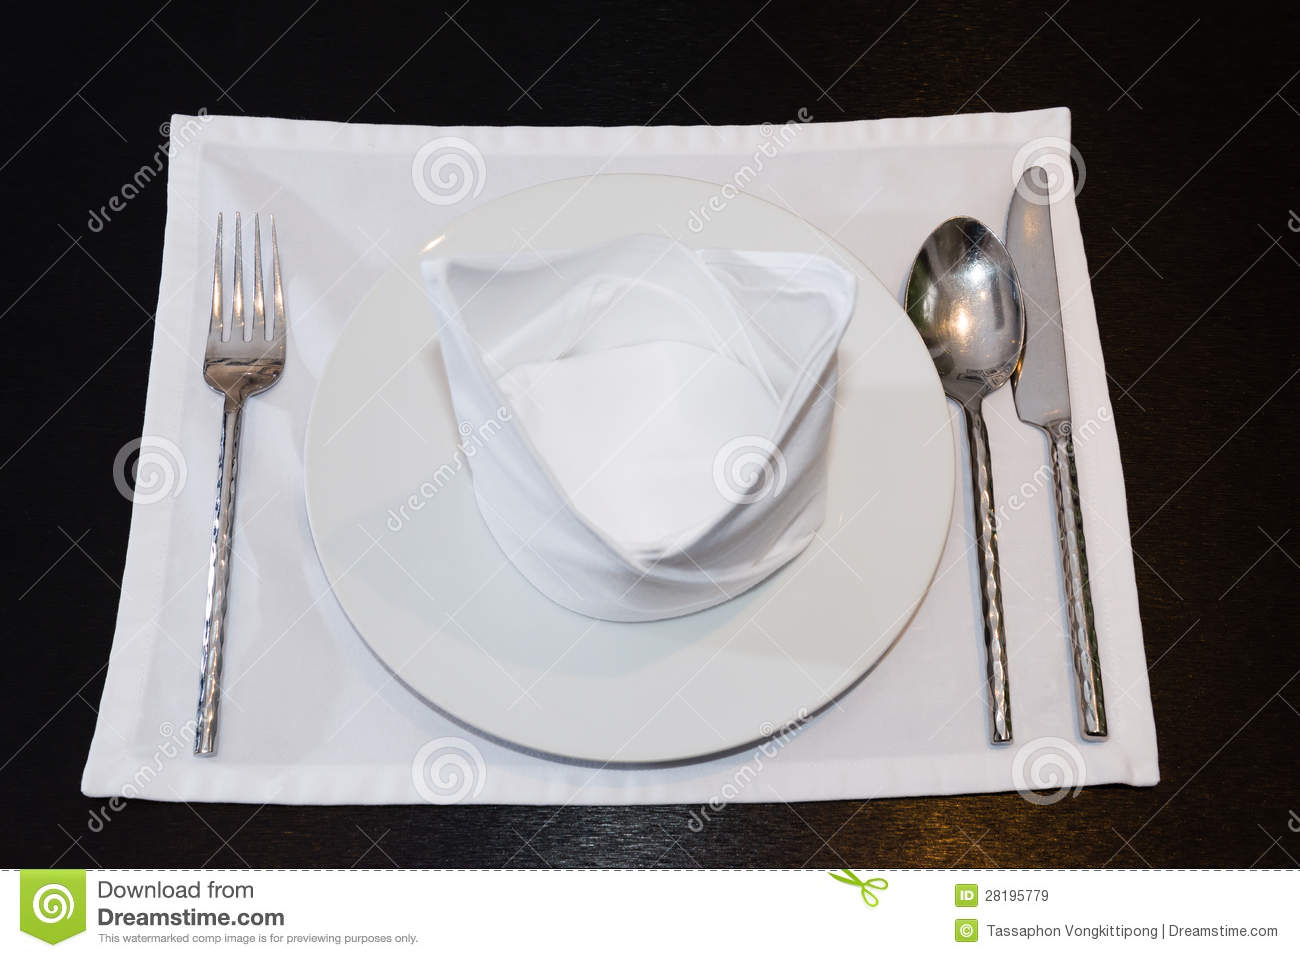 how to set a table with silverware and napkins